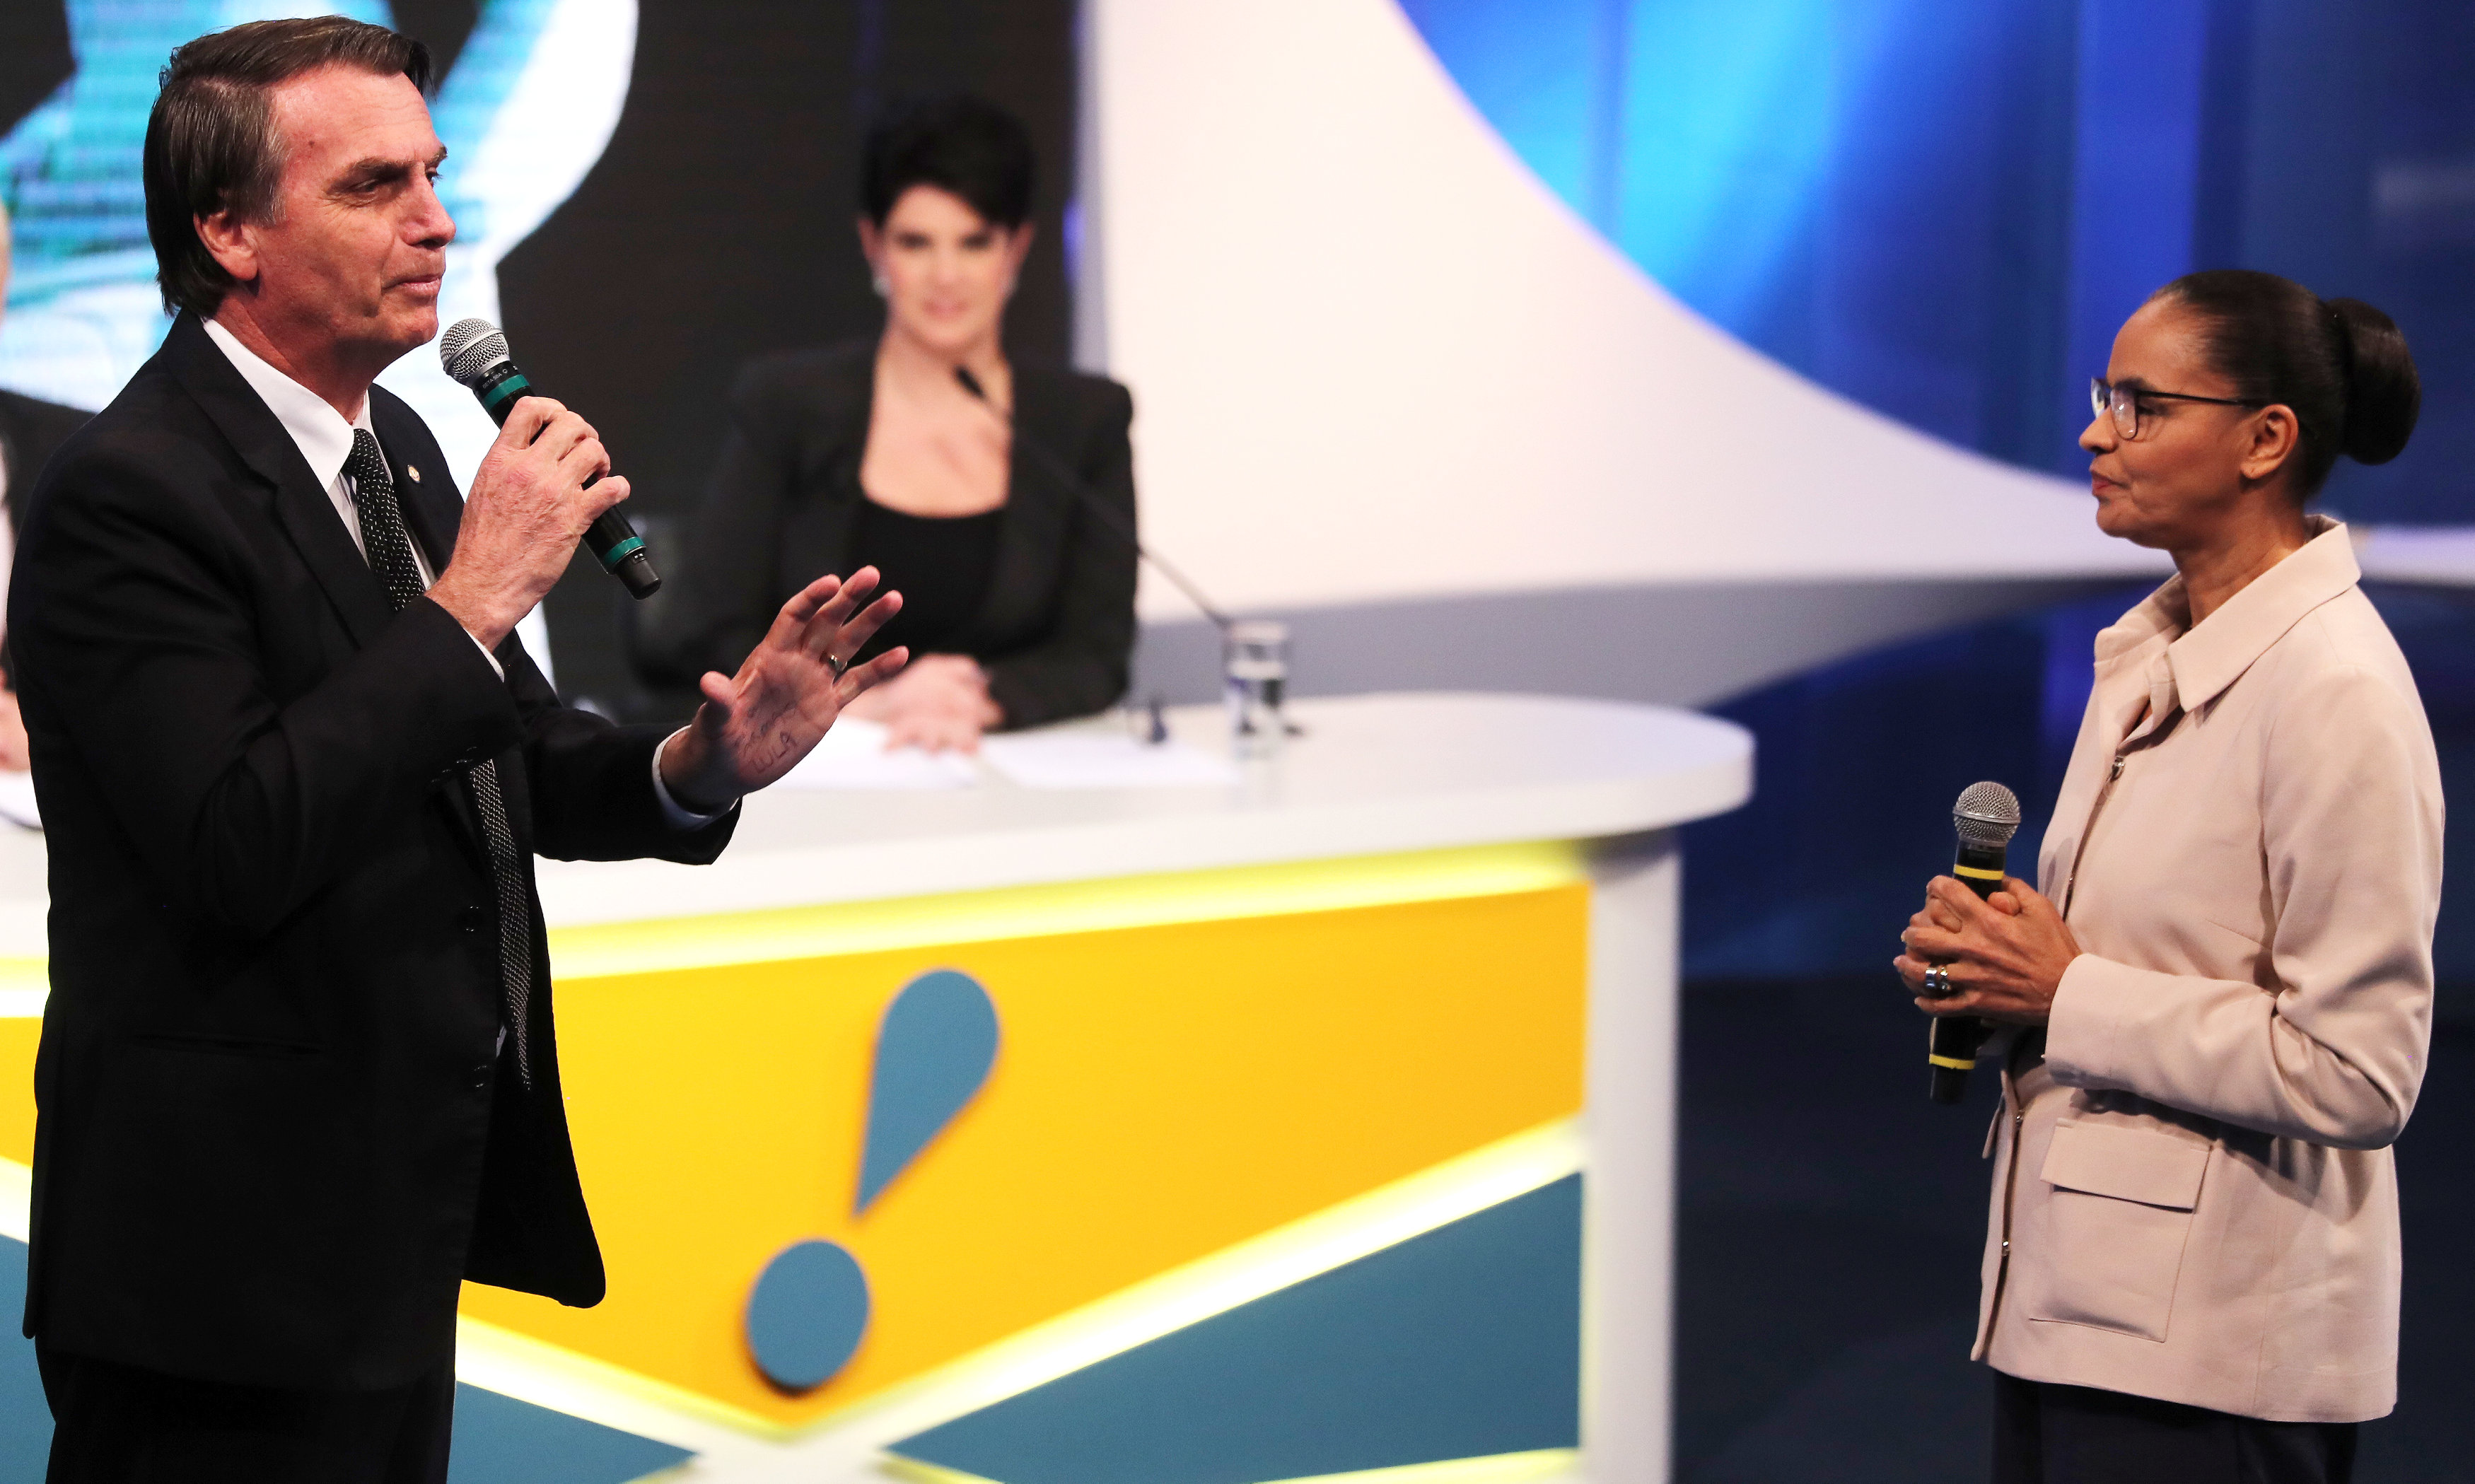 Presidential candidate Jair Bolsonaro of the Party for Socialism and Liberation (PSL) speaks next to candidate Marina Silva of the Brazilian Sustainability Network Party (REDE) during a television debate at the Rede TV studio in Osasco, Brazil August 17, 2018. REUTERS/Paulo Whitaker